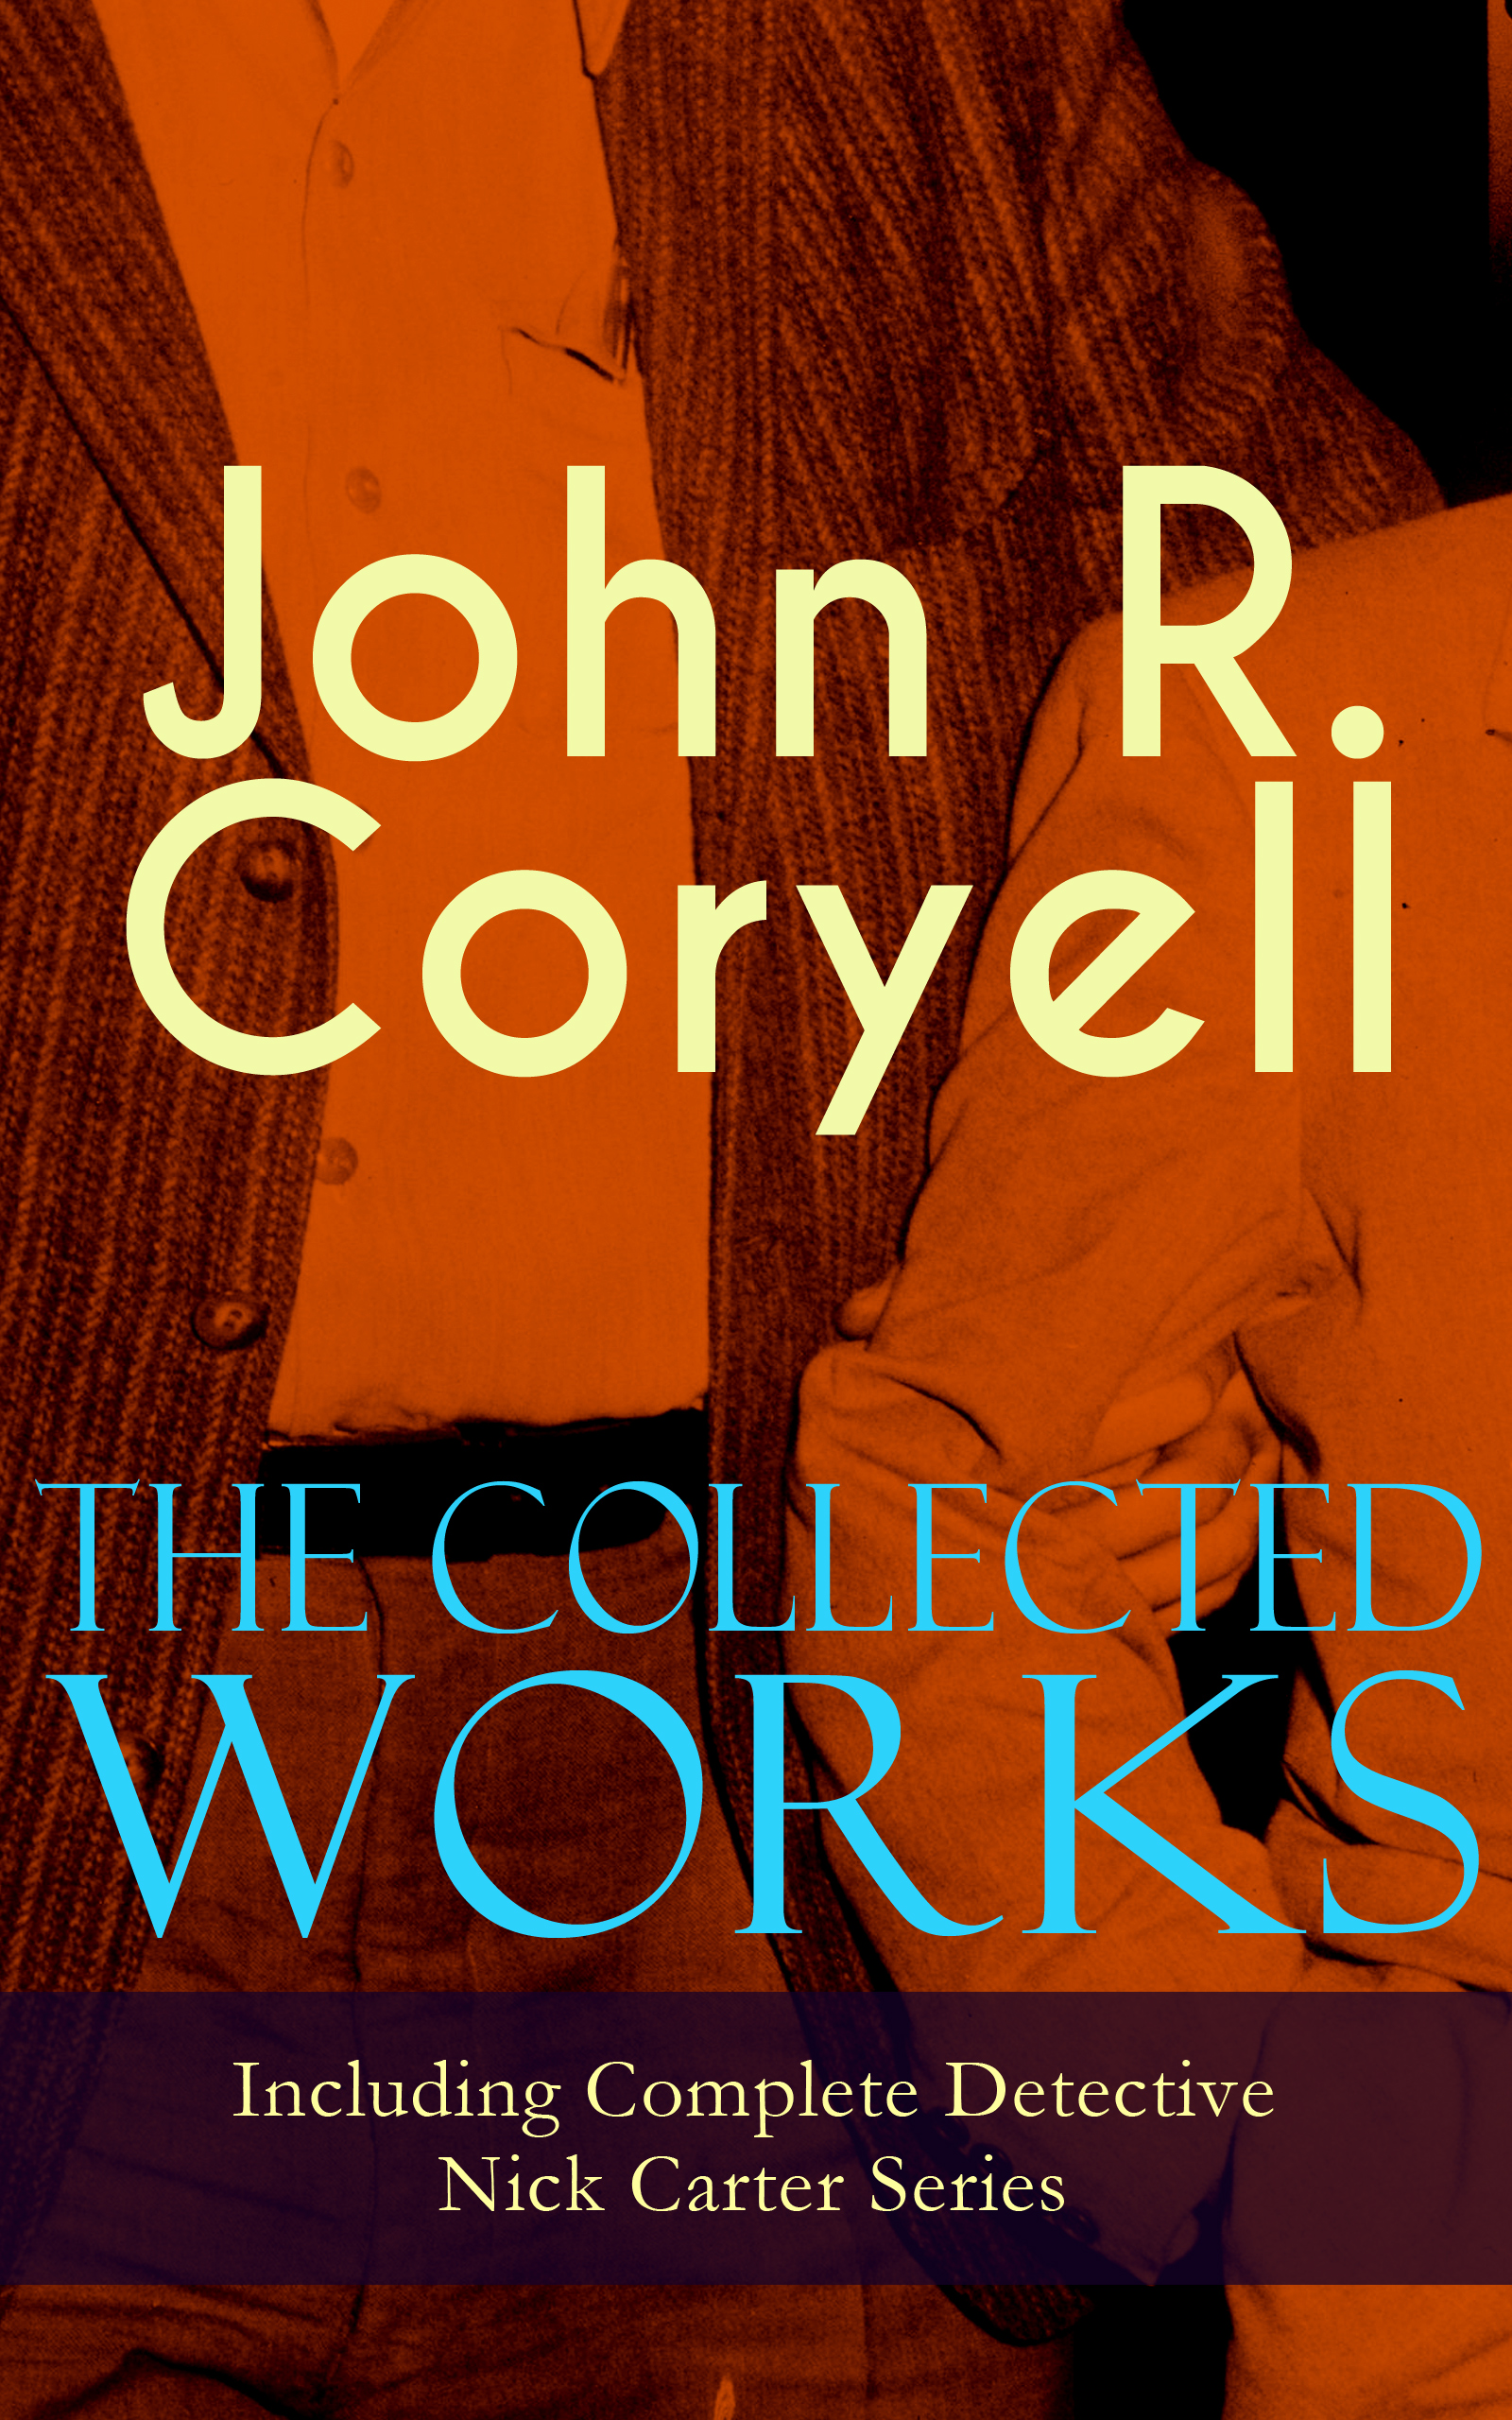 John R. Coryell The Collected Works of John R. Coryell (Including Complete Detective Nick Carter Series) john levine r unix for dummies